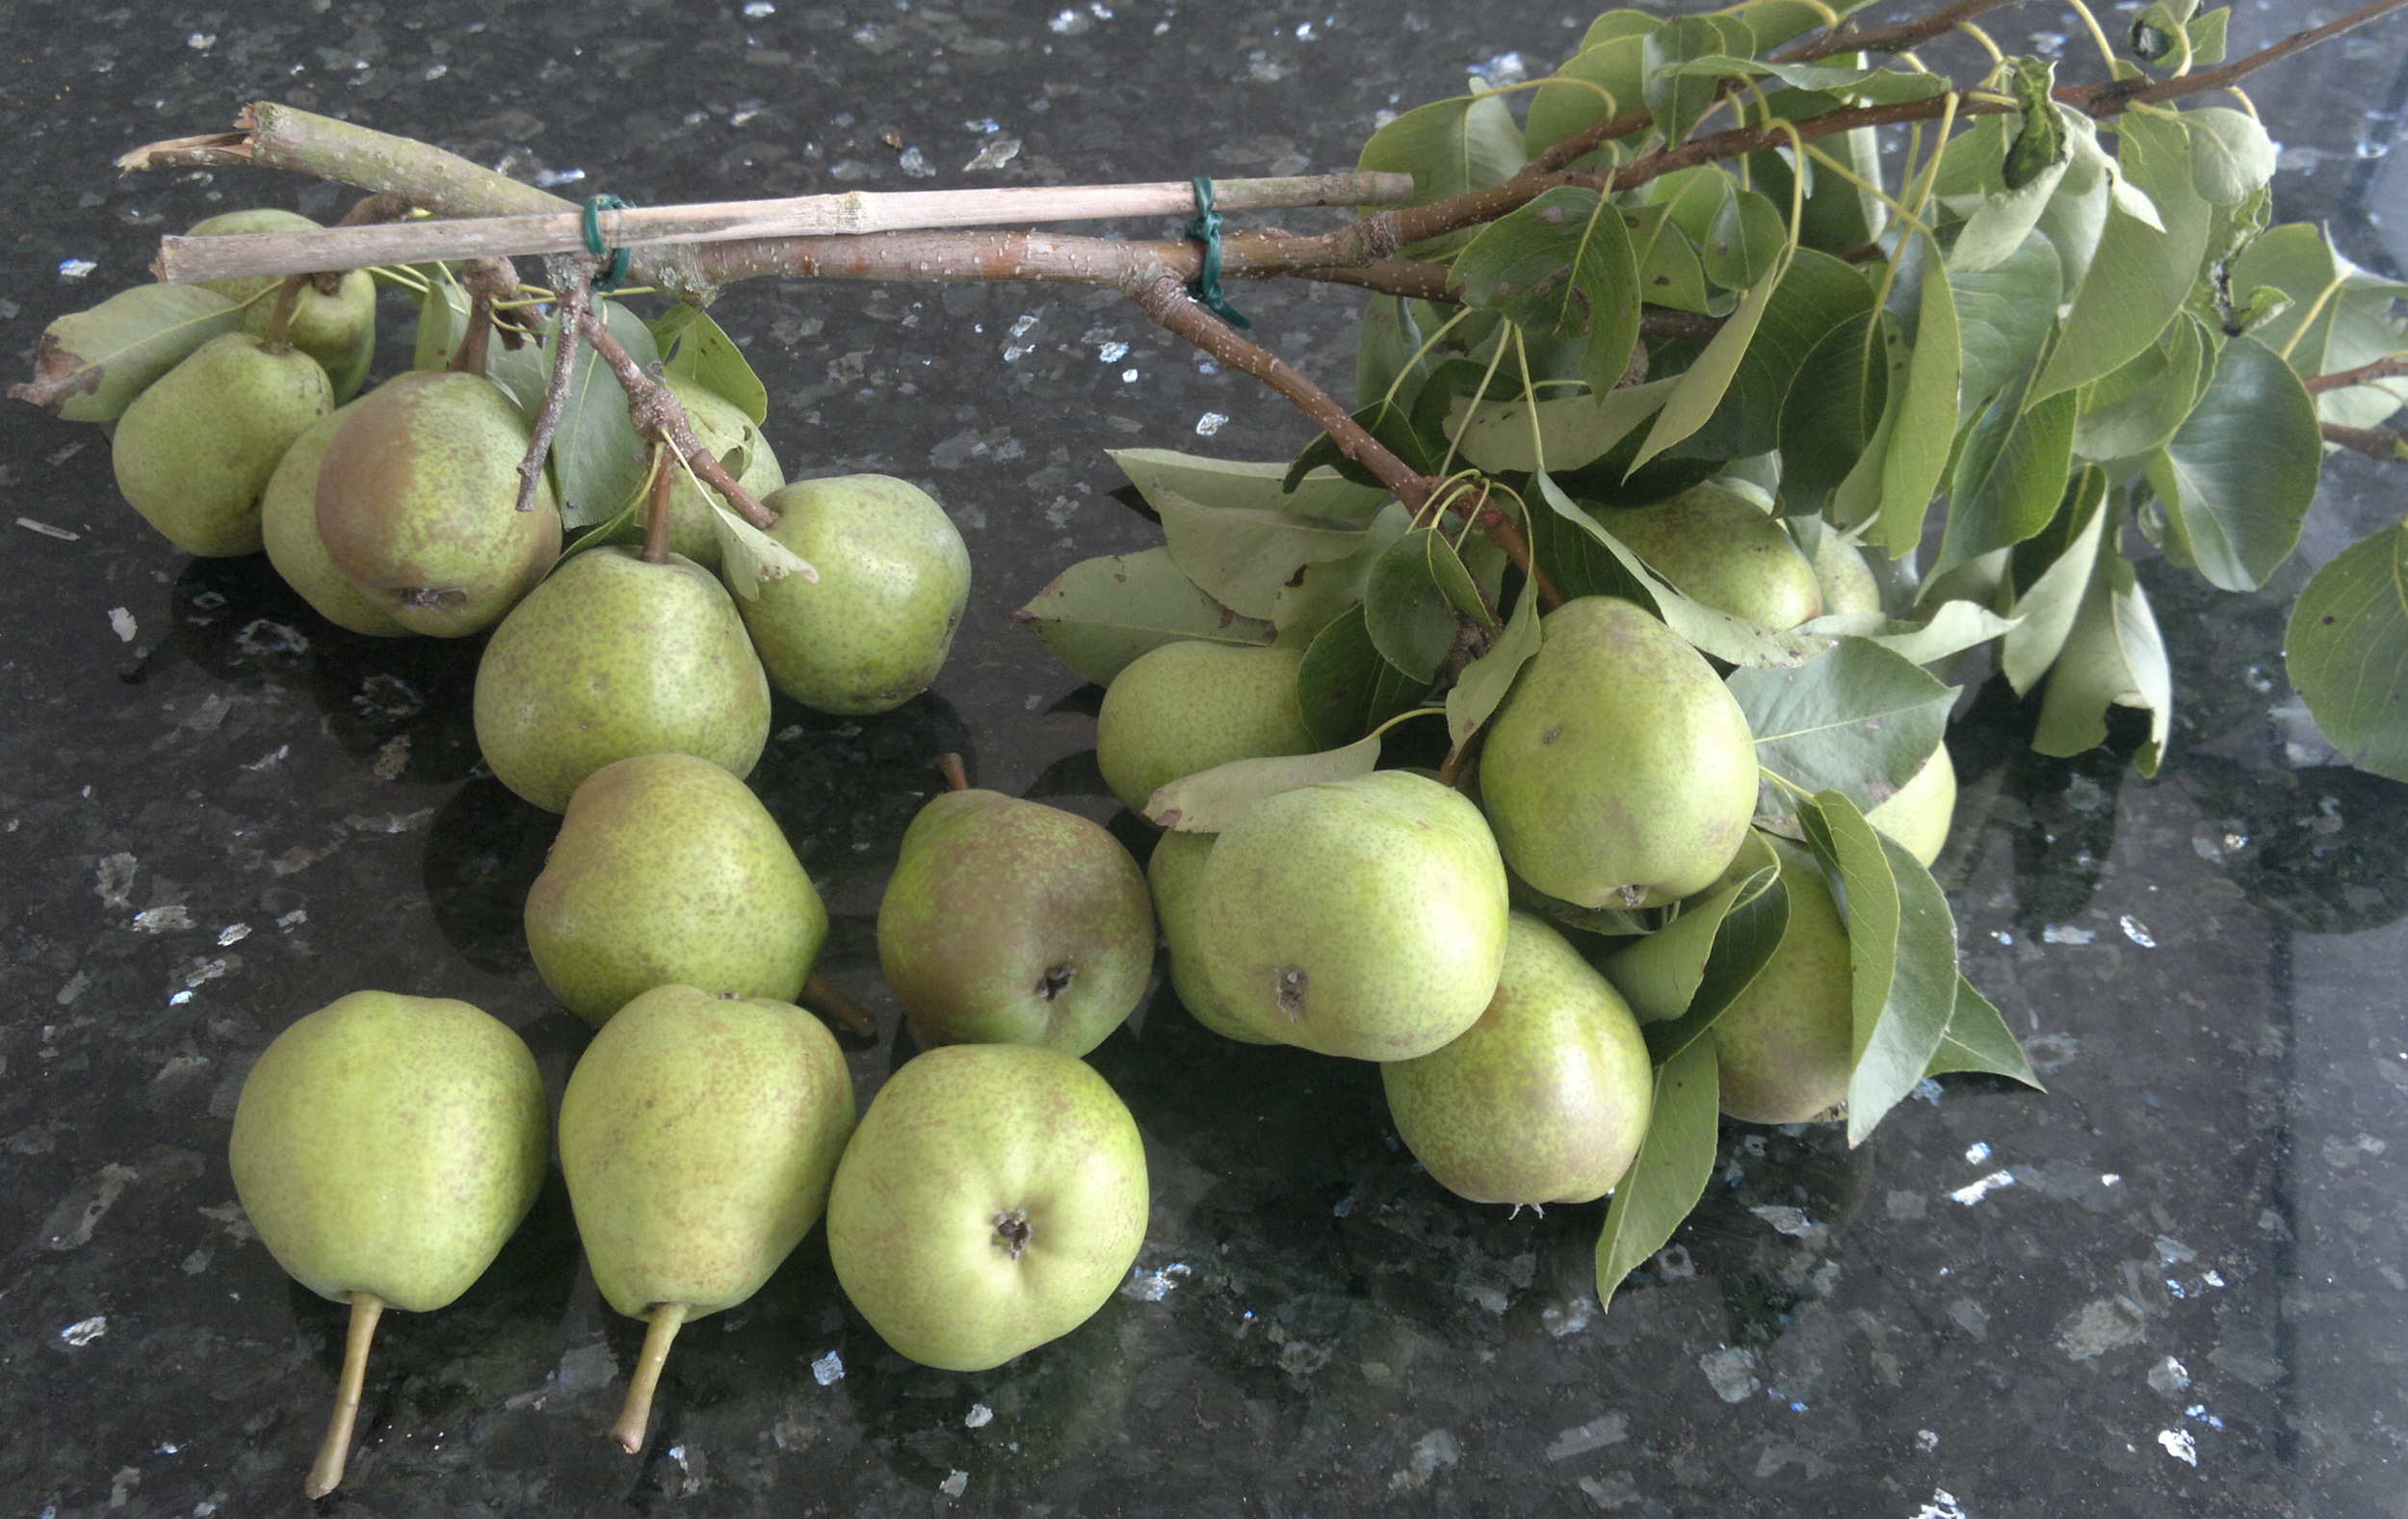 The broken branch, brought down by the large crop of pears